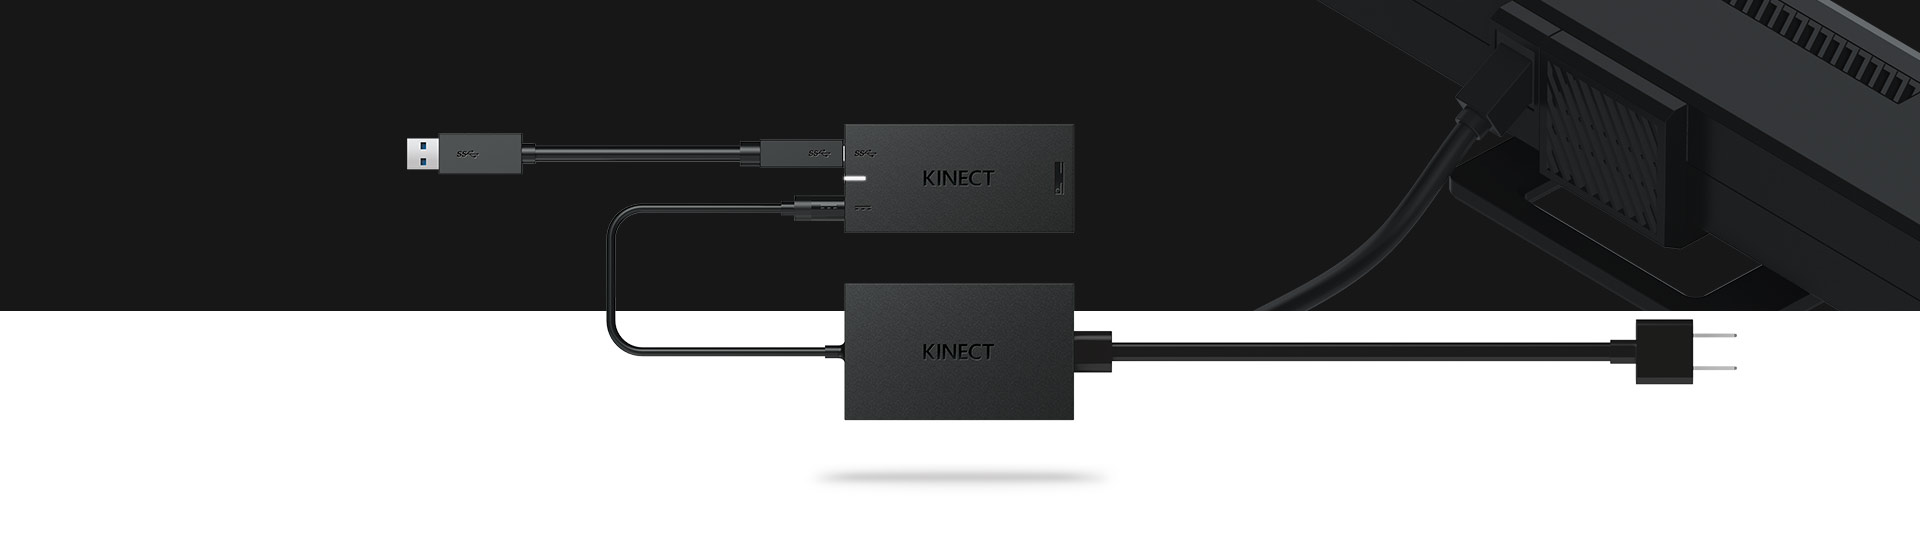 Kinect 어댑터